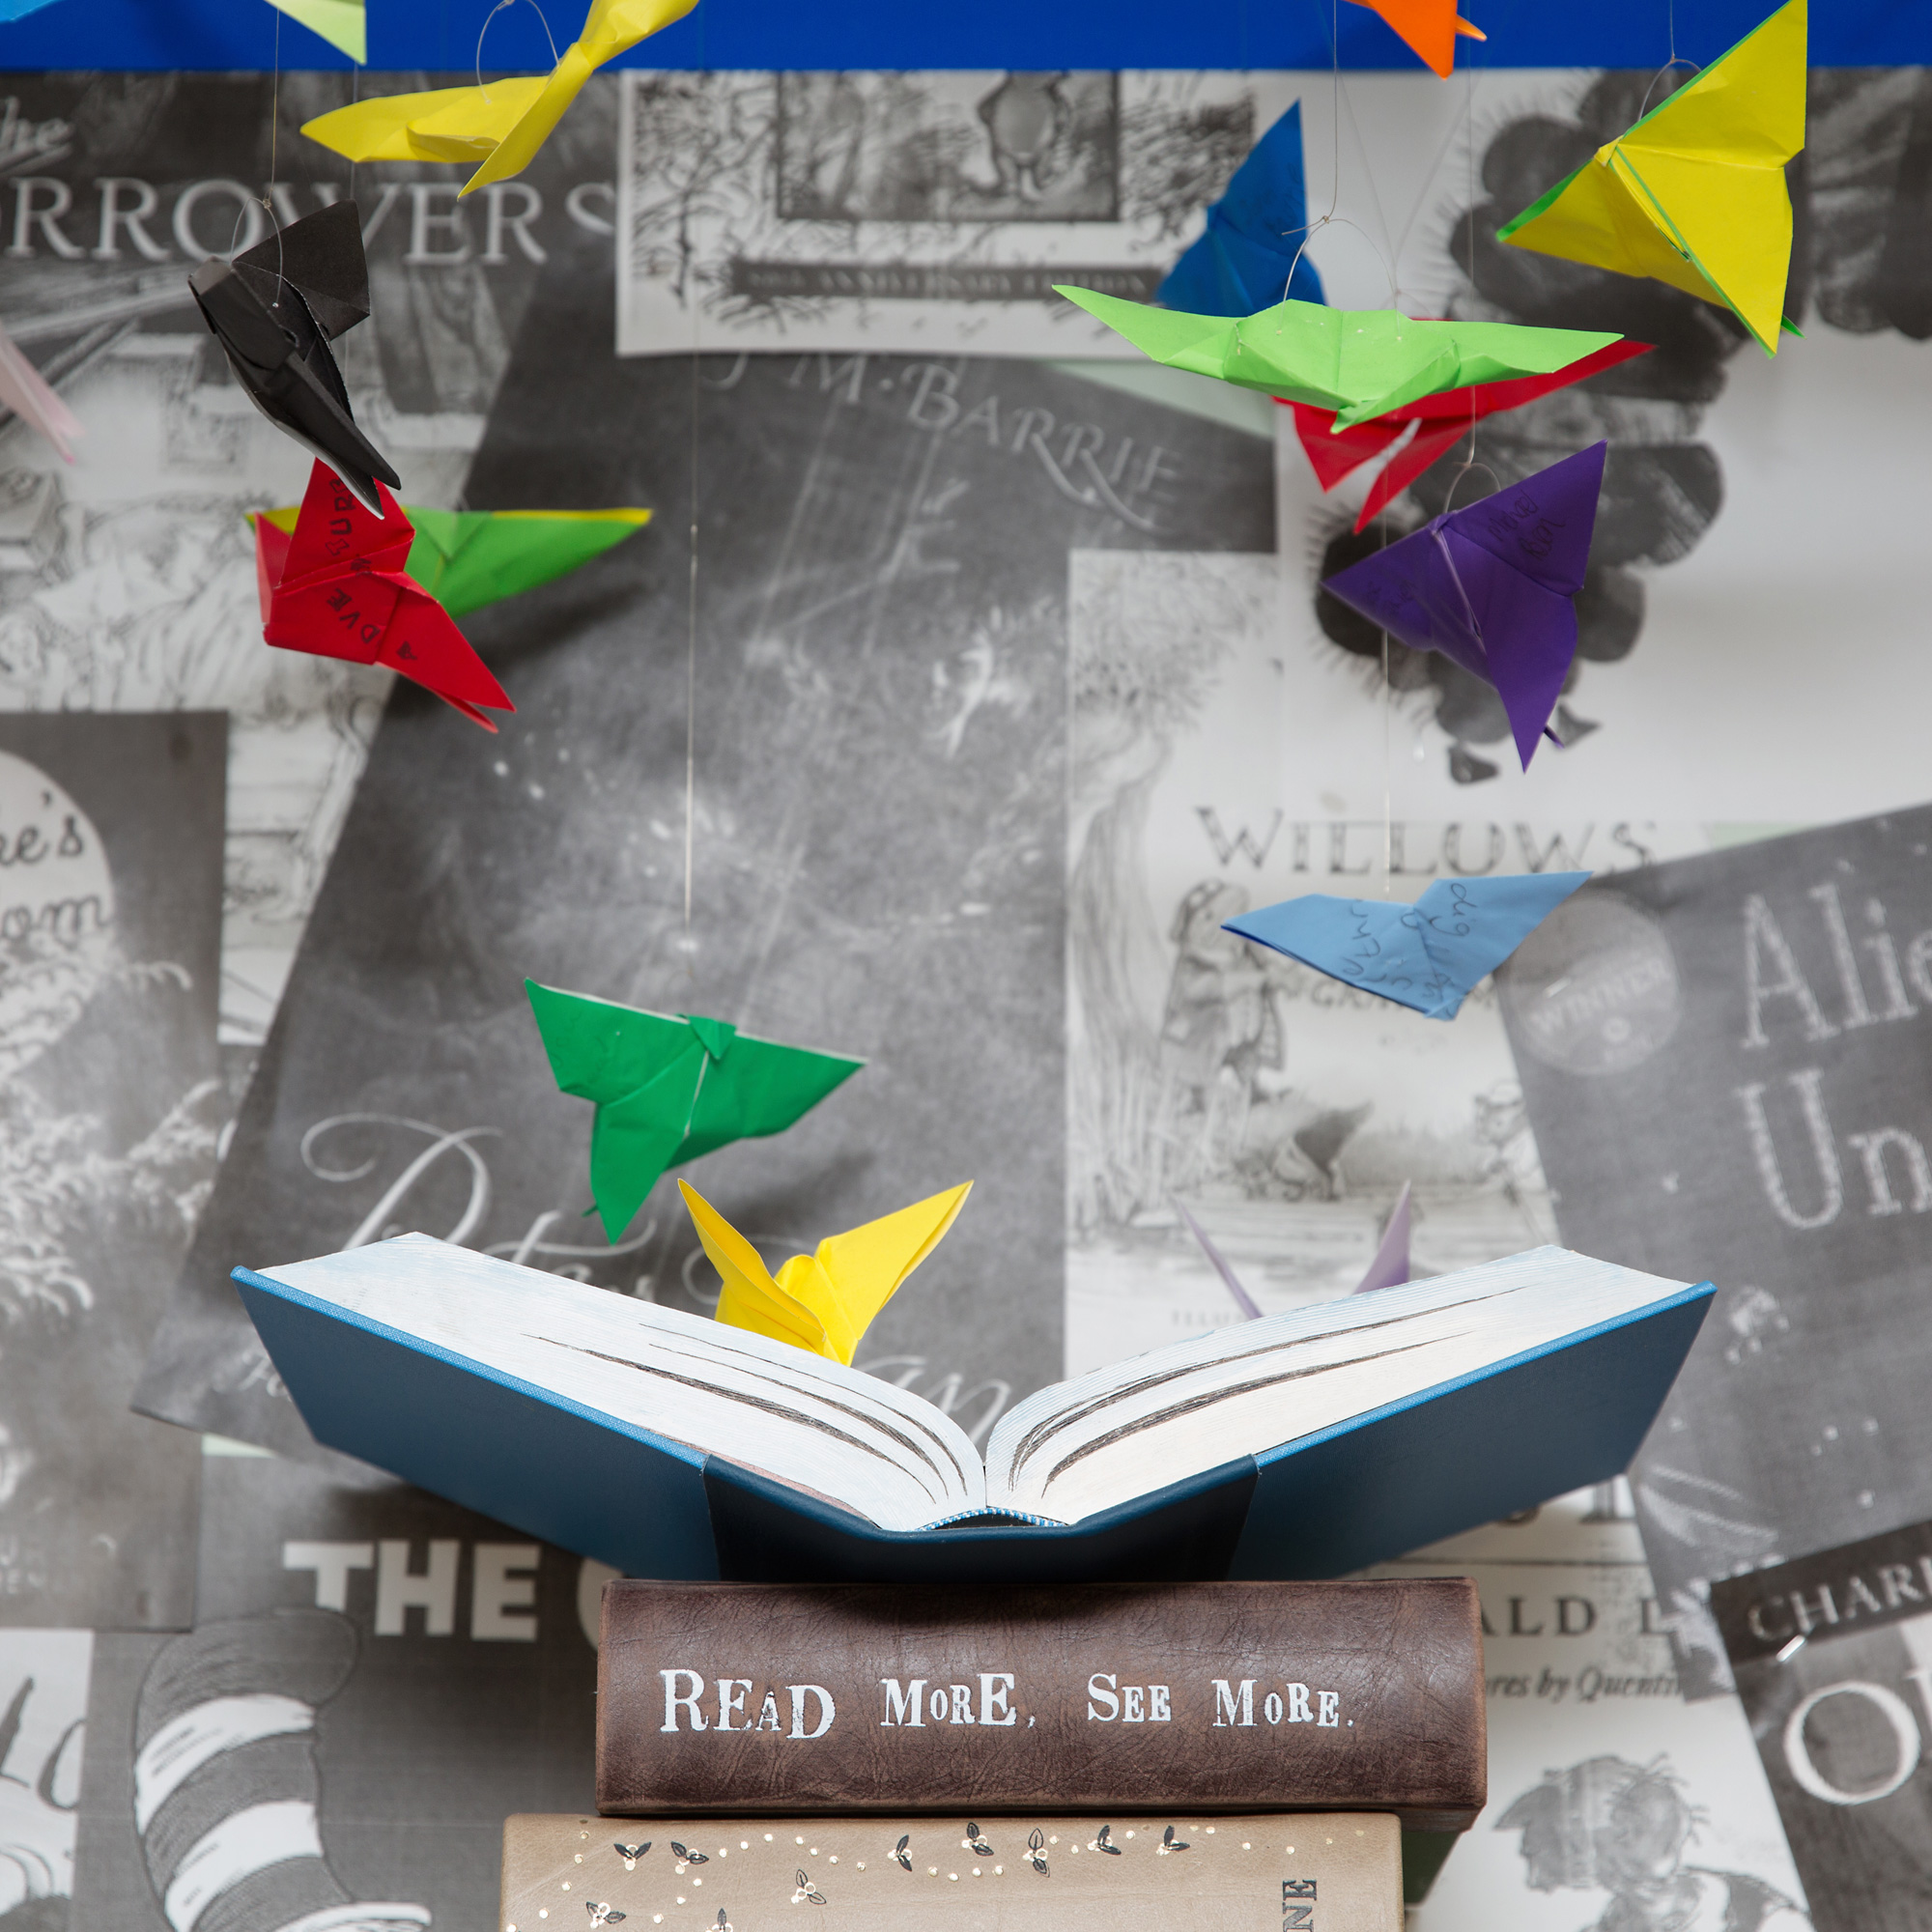 Origam butterfles fly out of art book installation